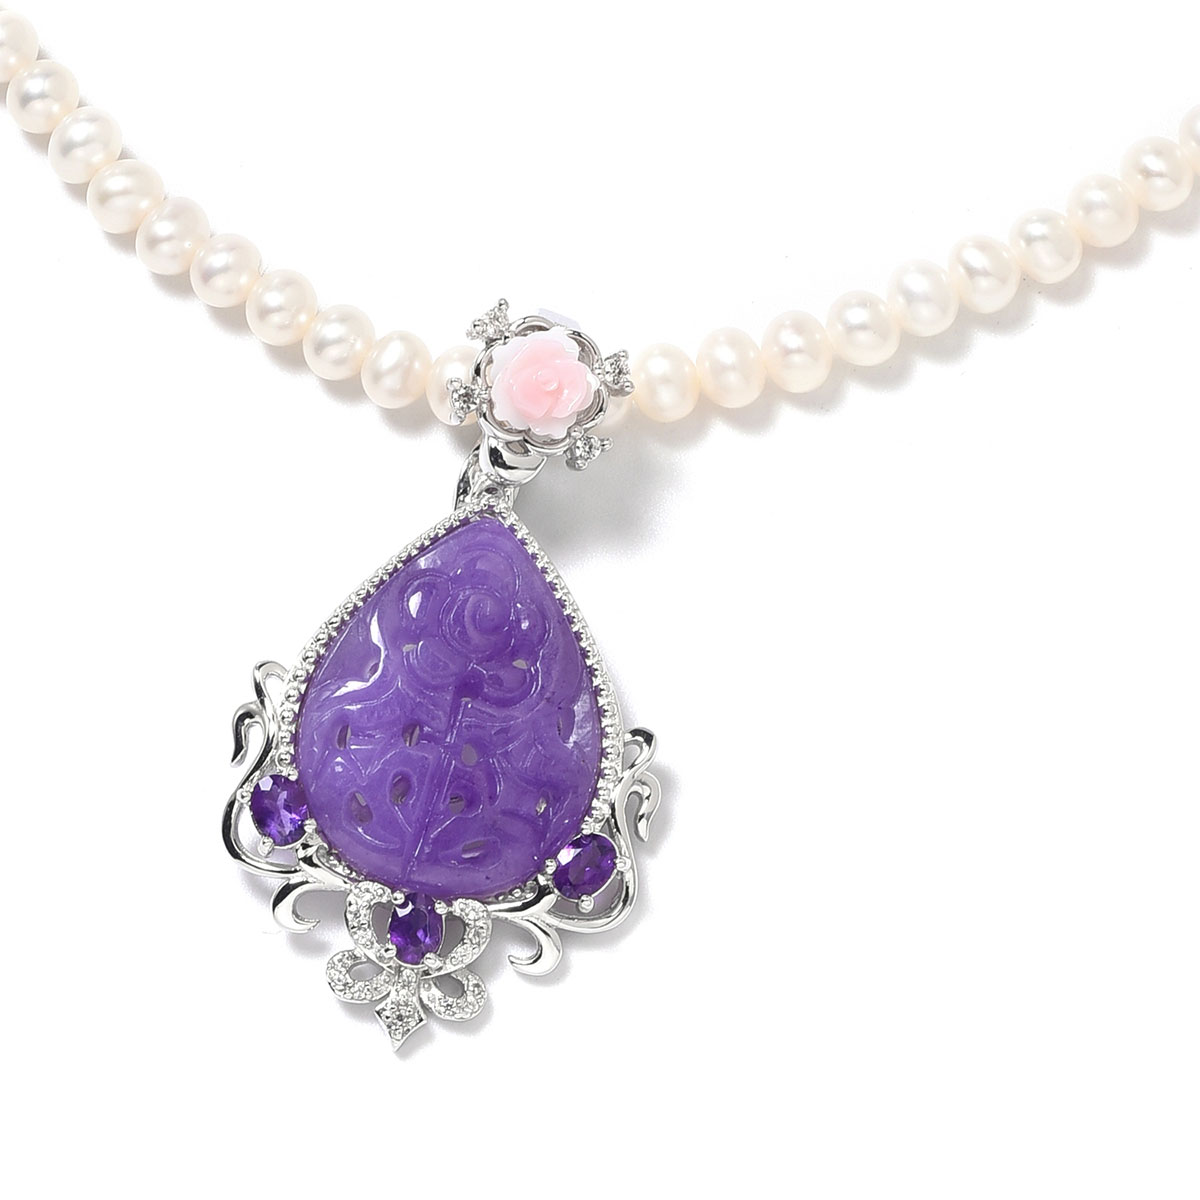 5779c0a25 Burmese Purple Jade Carved, Multi Gemstone Sterling Silver Pendant With  Pearl Necklace (18 in) 10.75 ctw | Shop LC